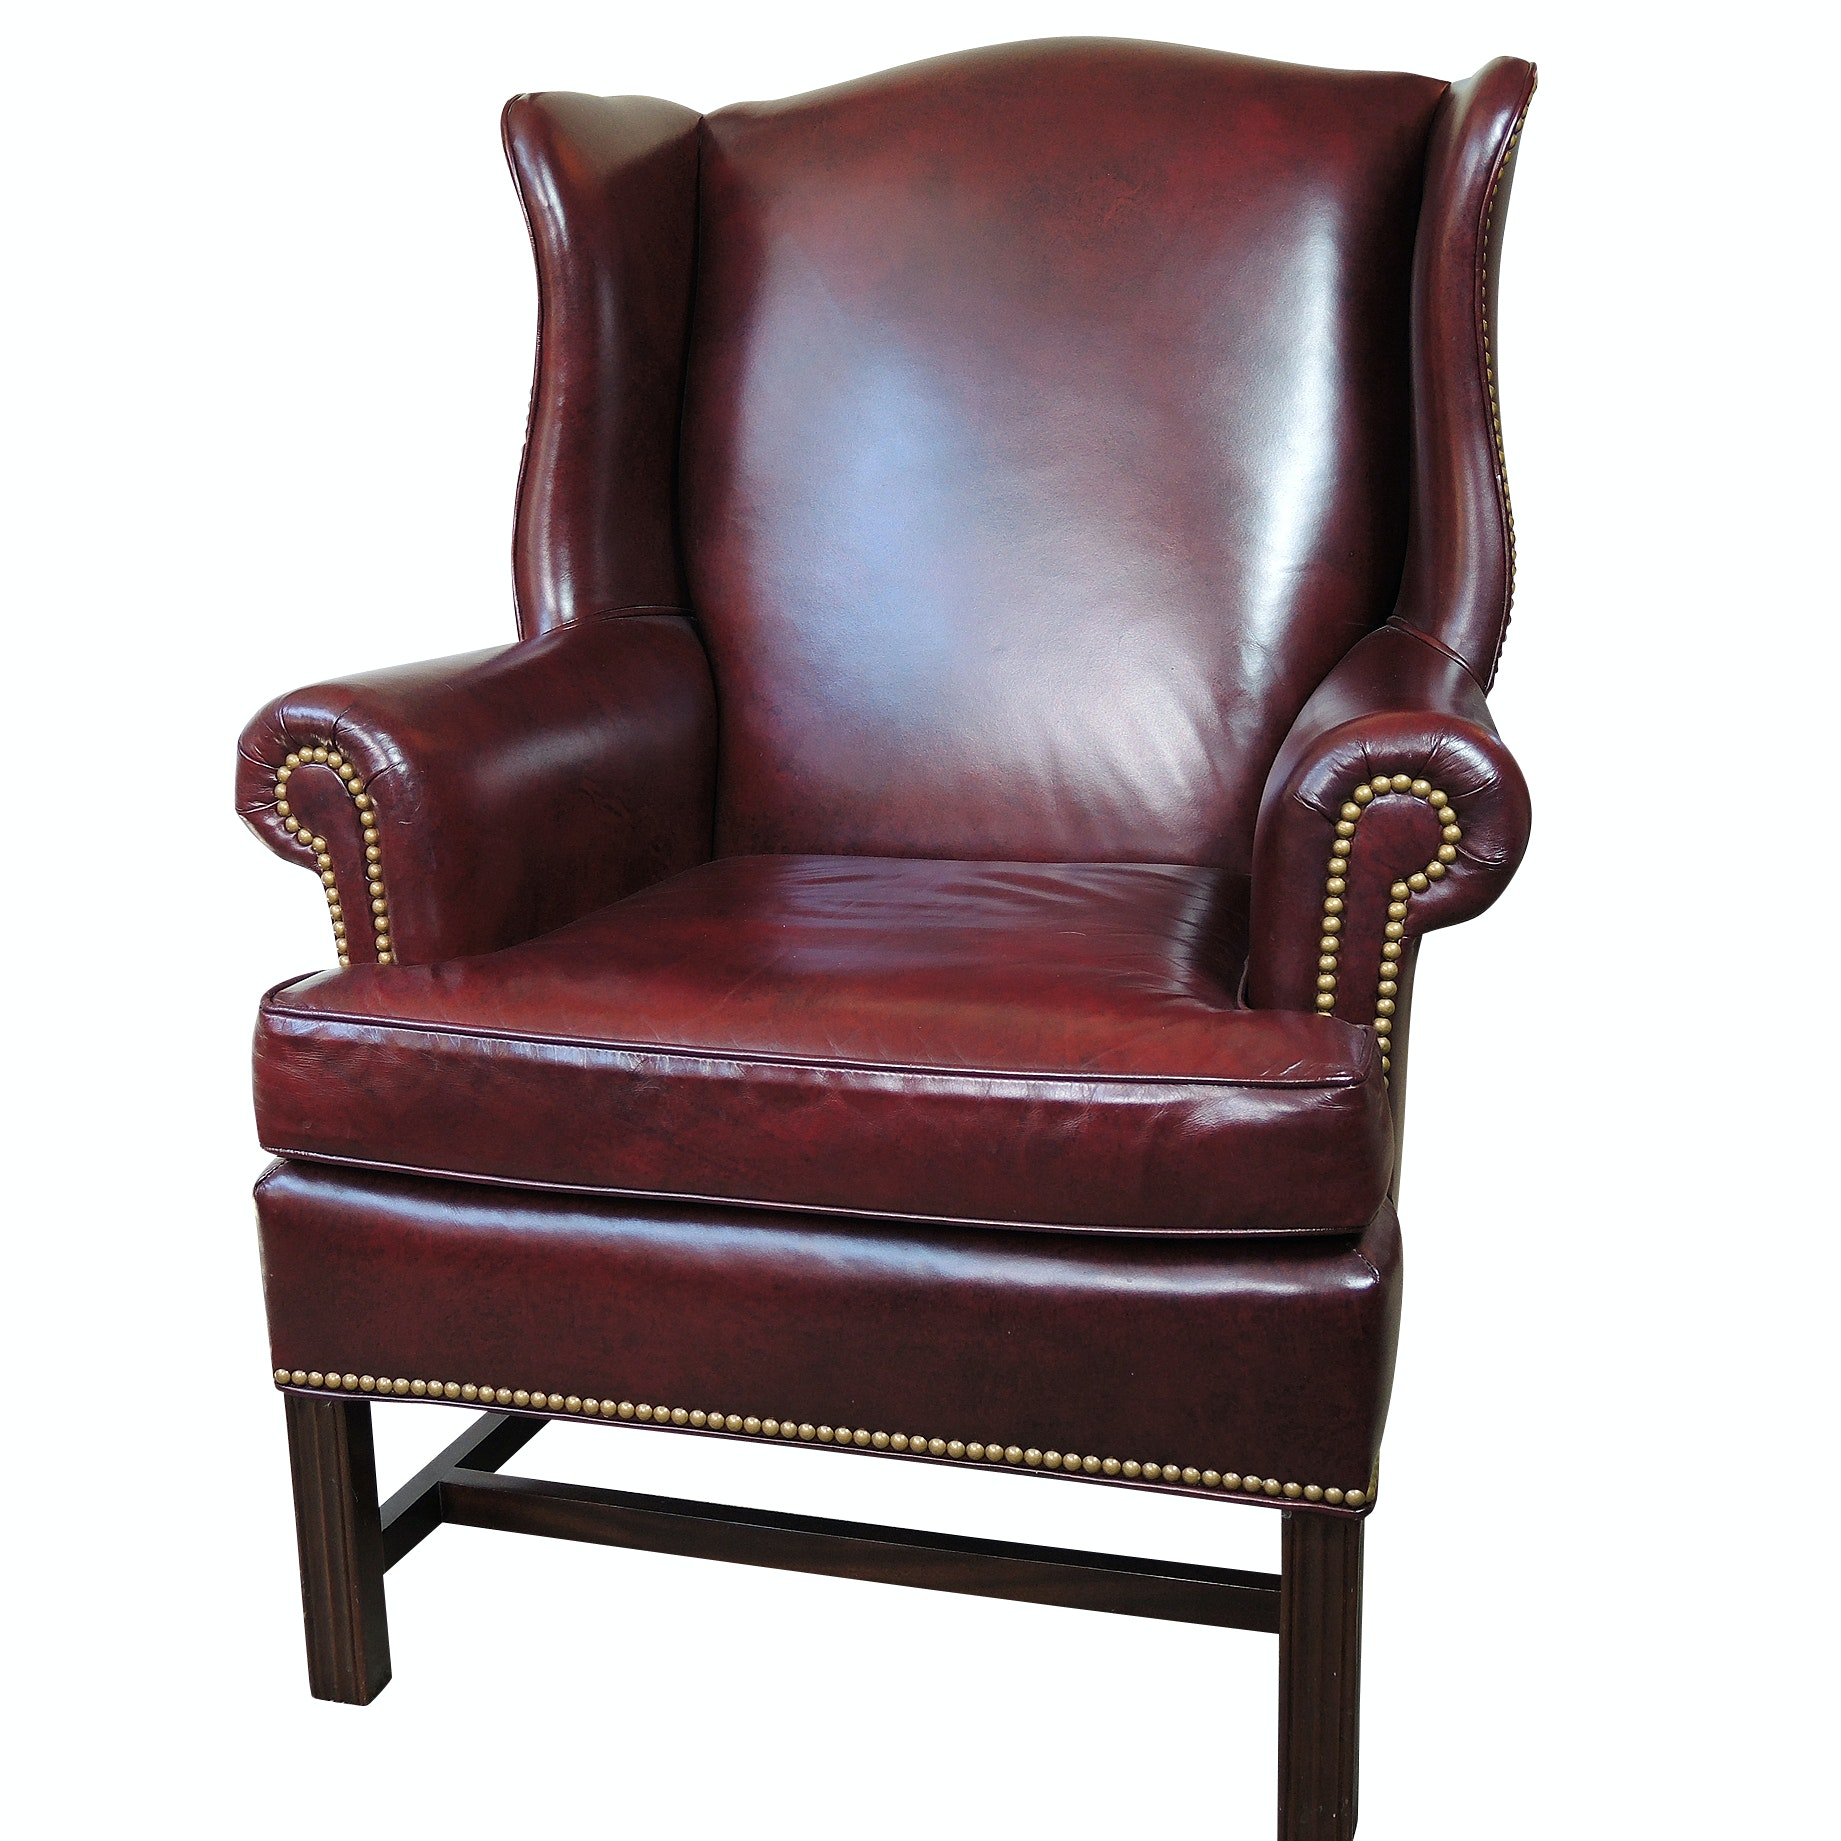 Hancock & Moore Red Leather Wing Back Armchair